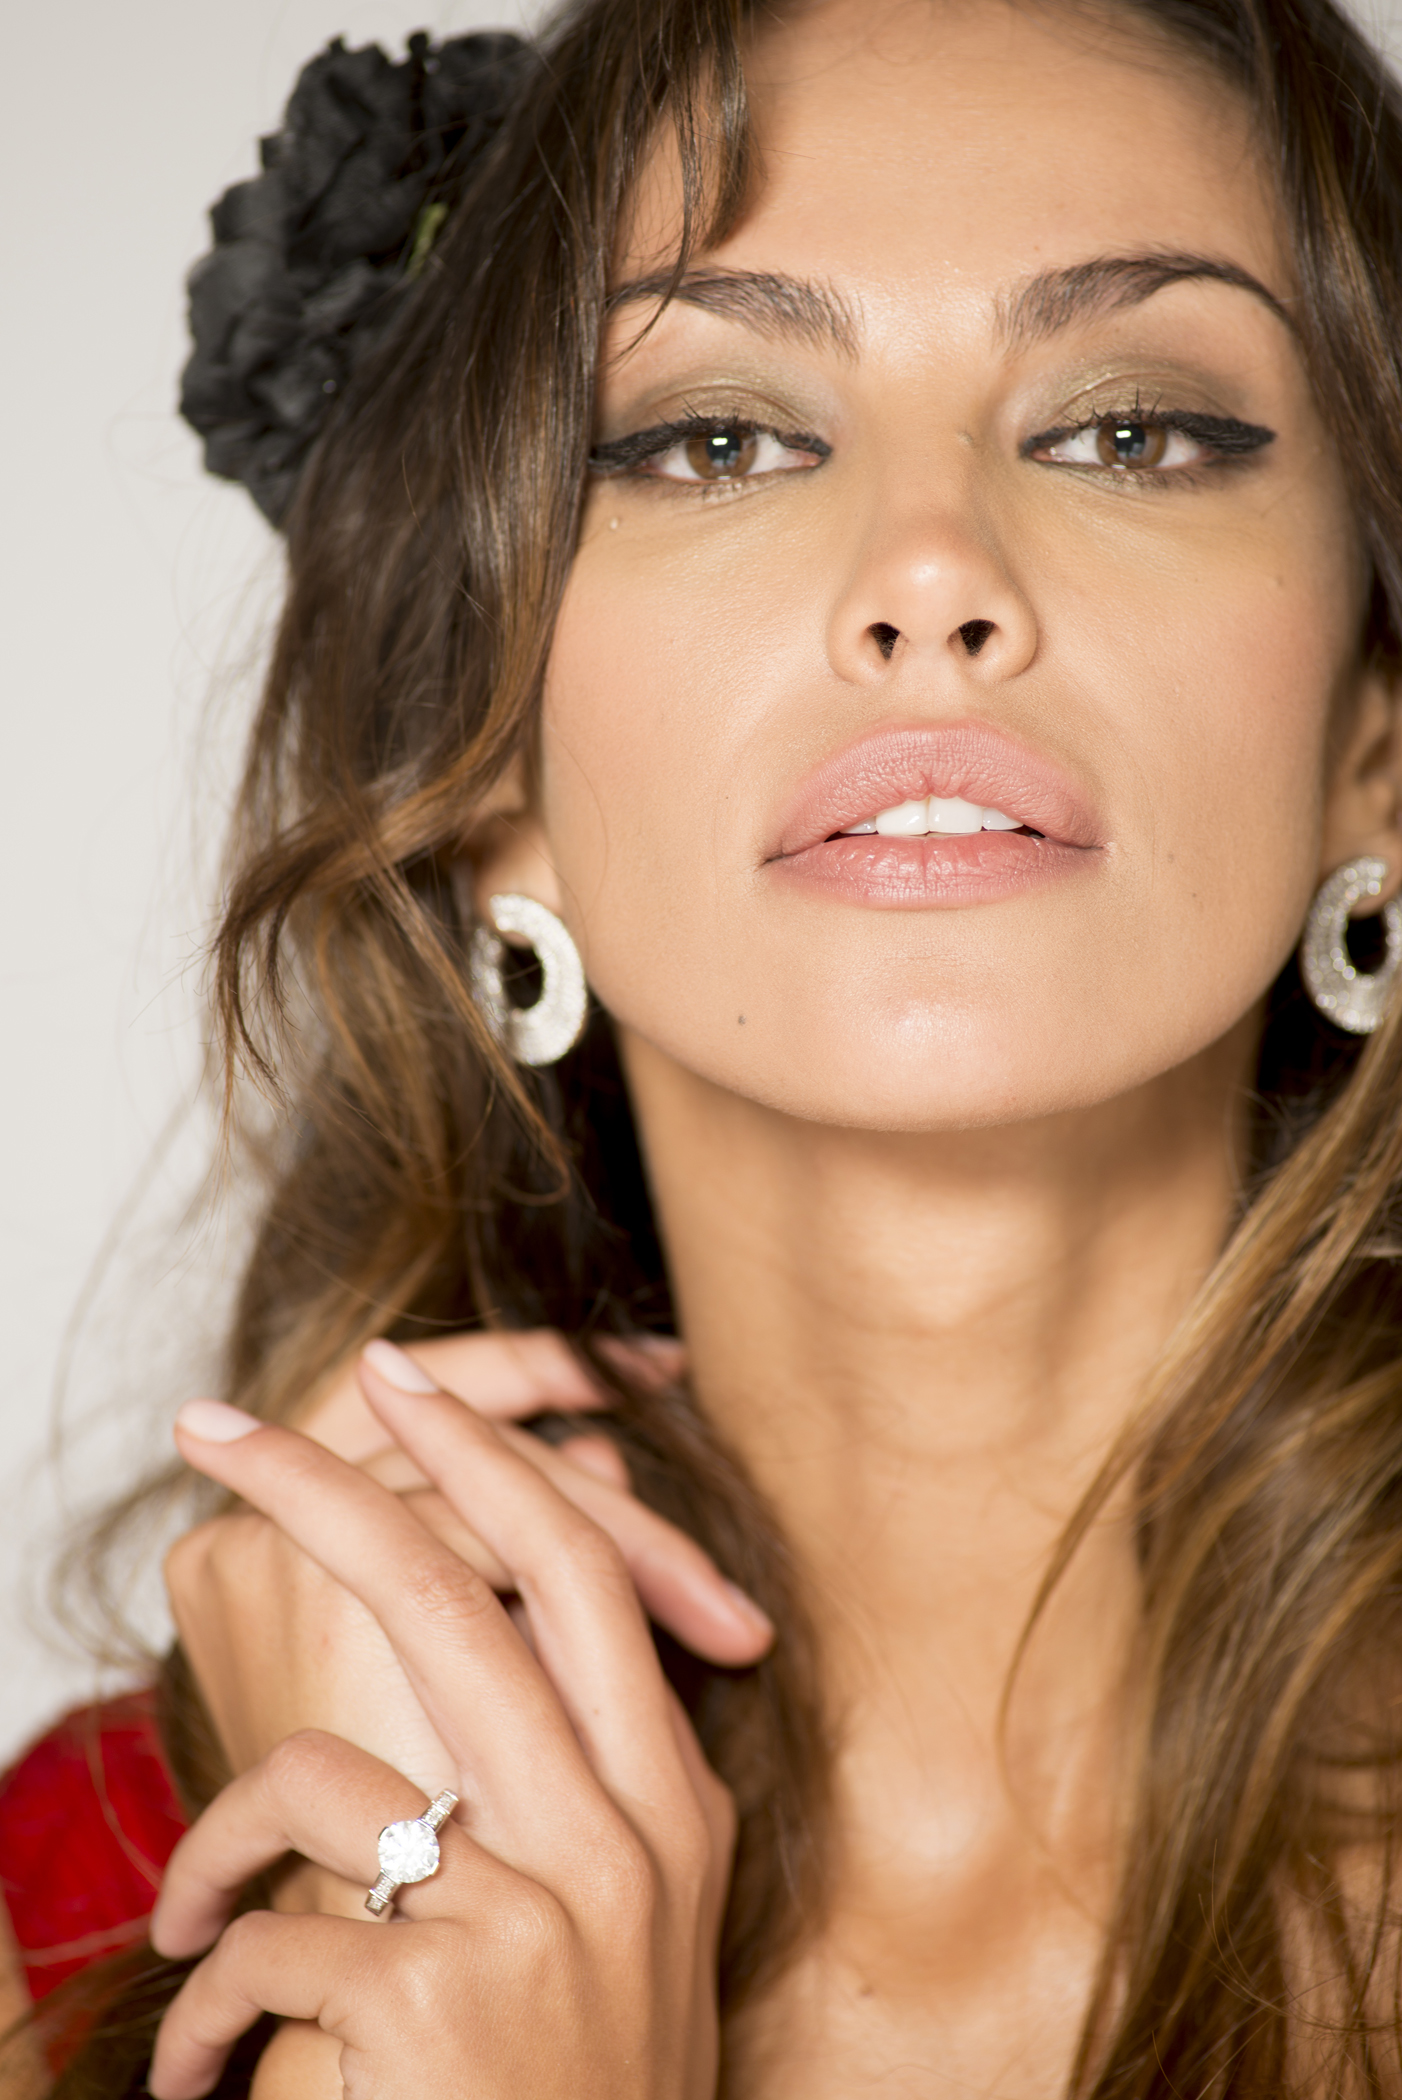 madalina ghenea wiki - photo #3